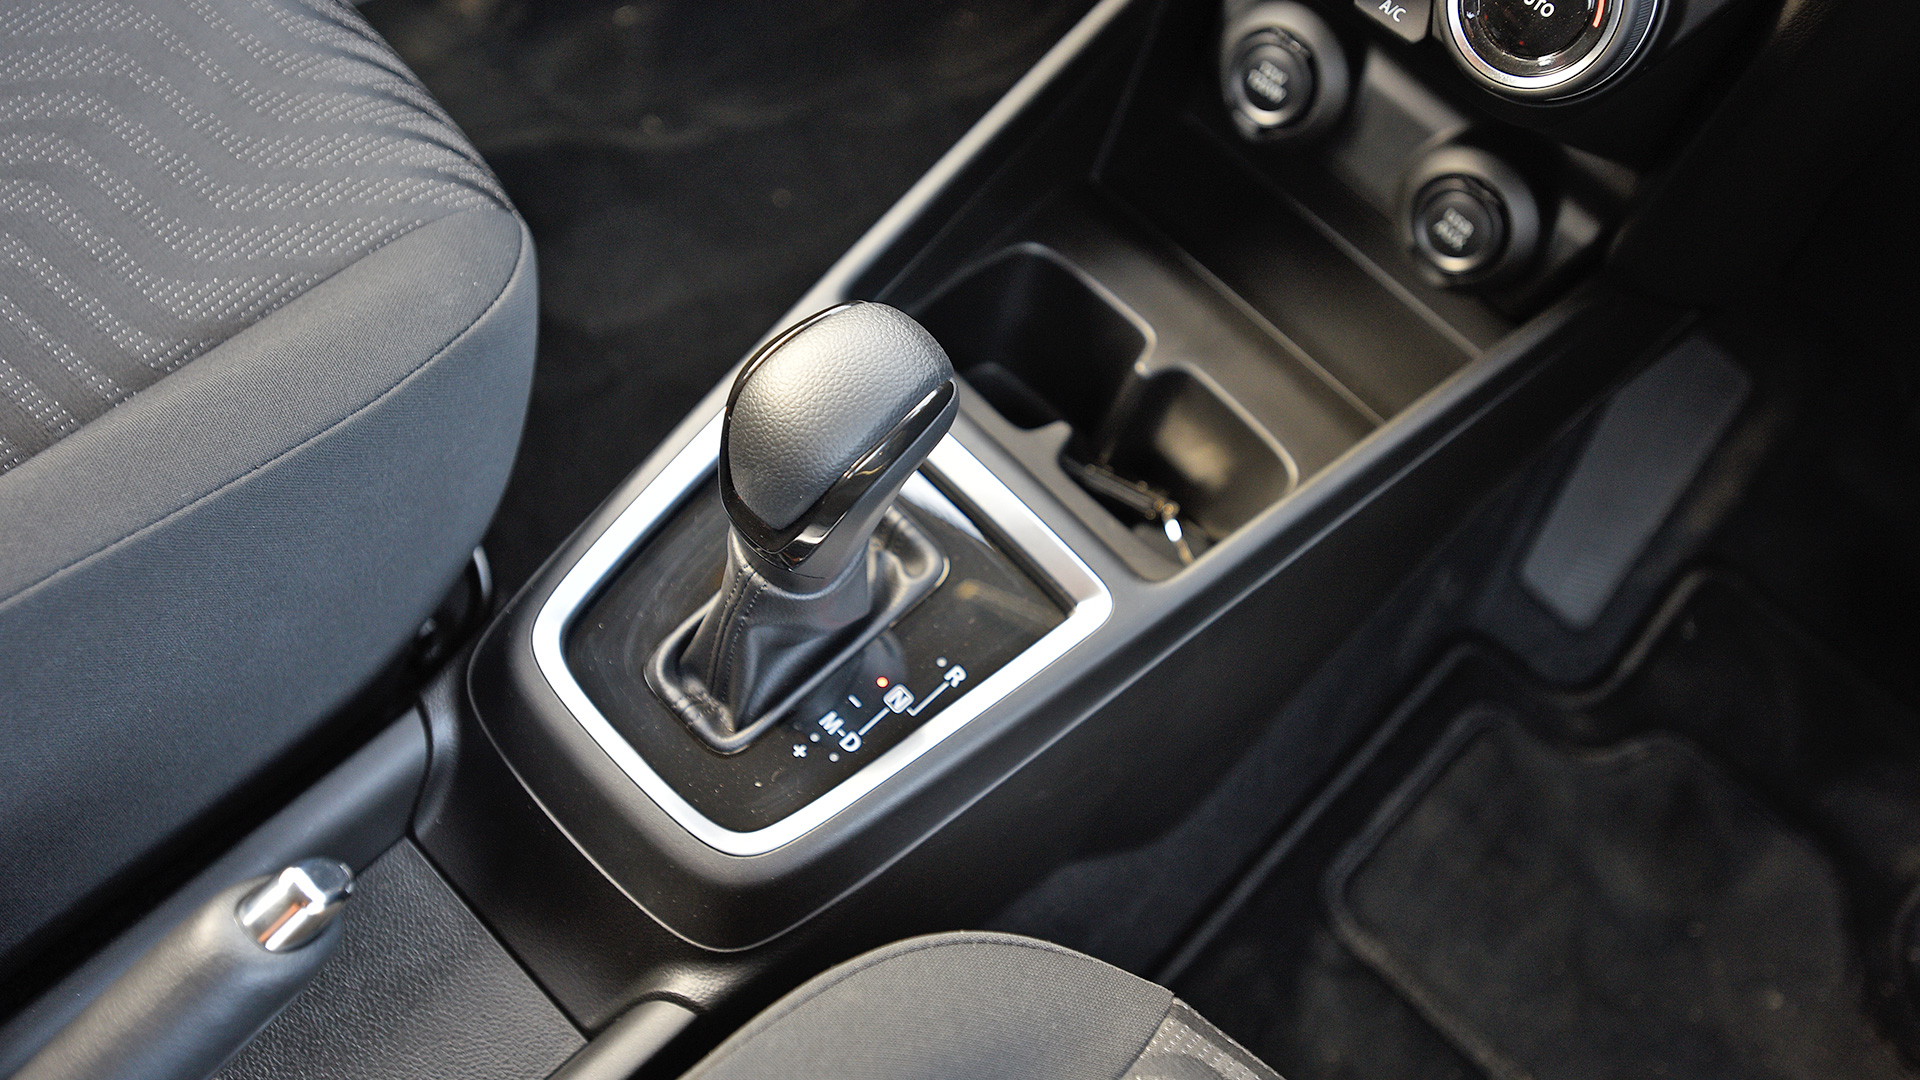 Maruti Suzuki Swift 2018 ZDi+ - Gear unit